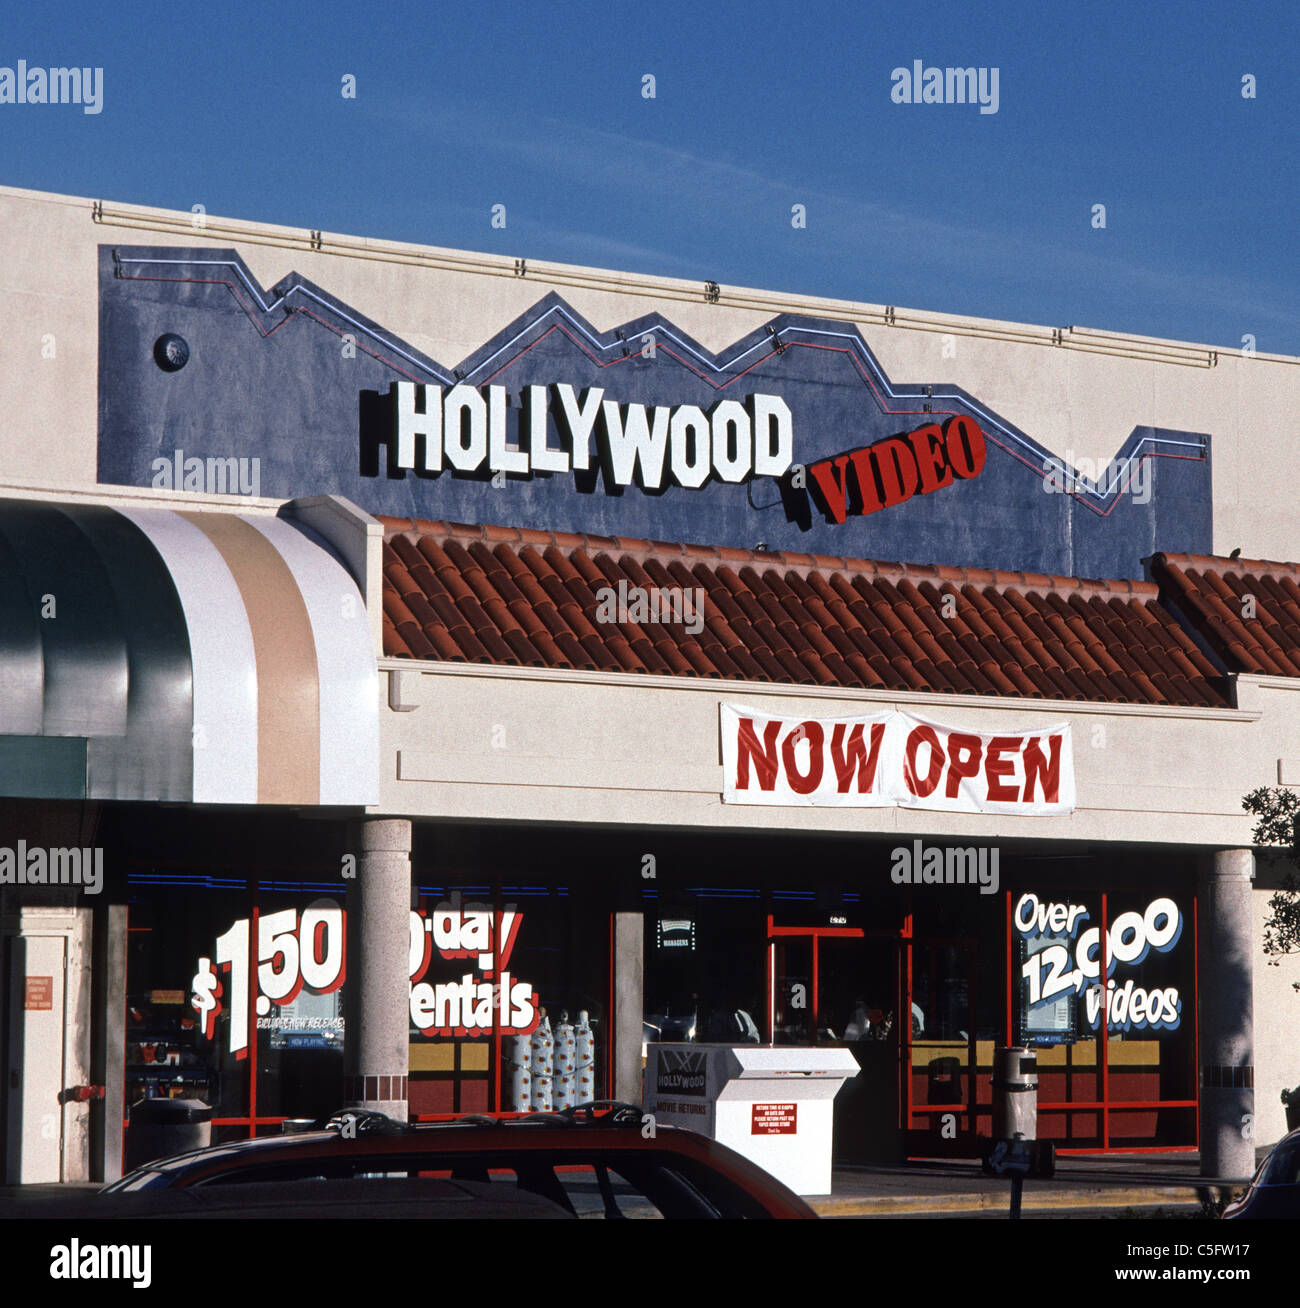 Hollywood Video Stock Photos & Hollywood Video Stock